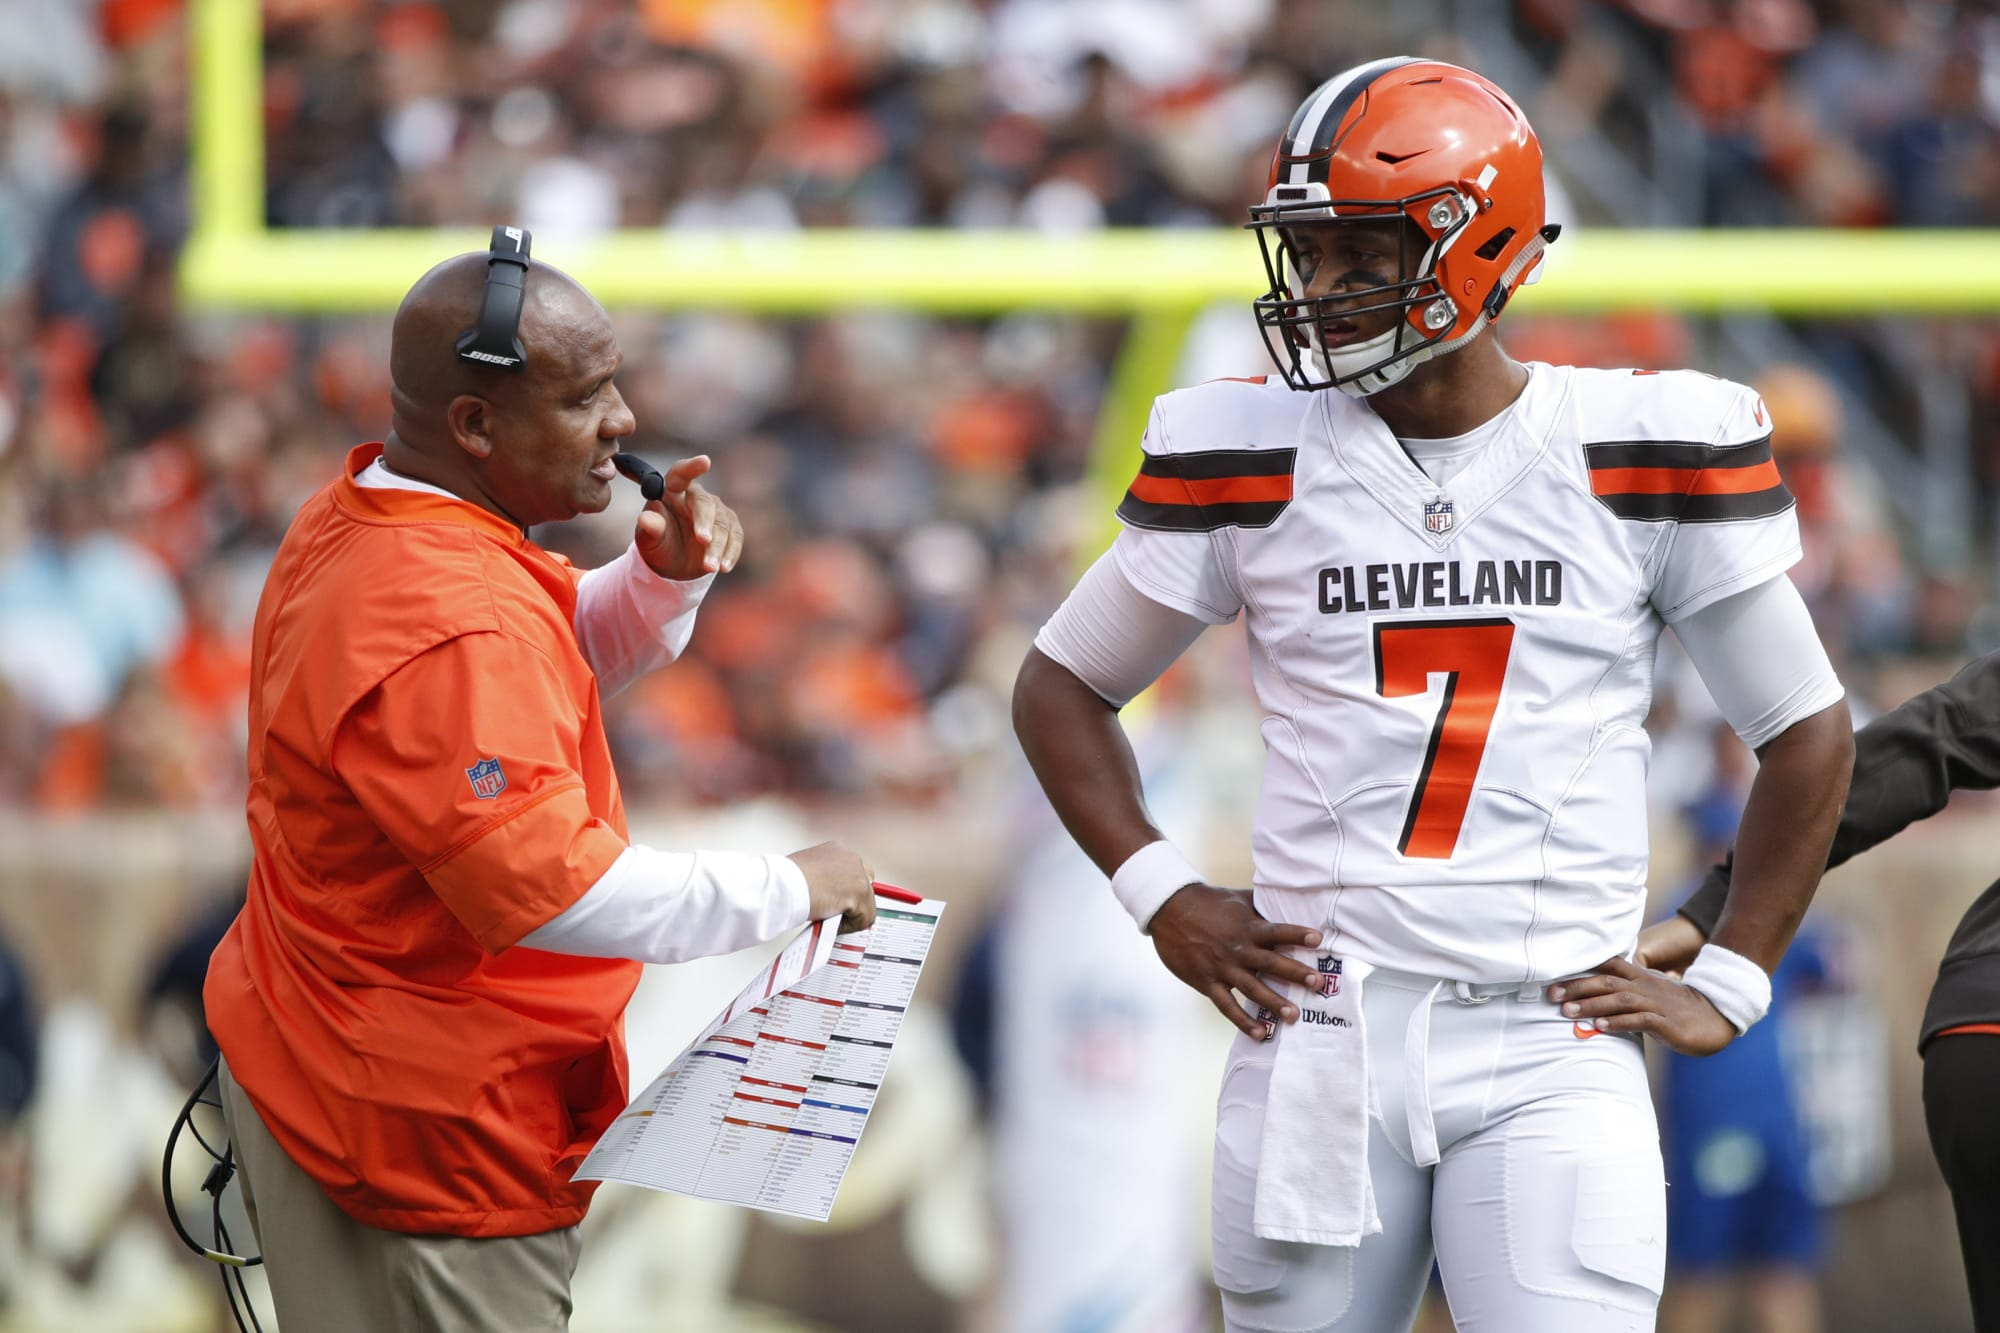 DeShone Kizer's failed career exemplifies what Hue Jackson was about